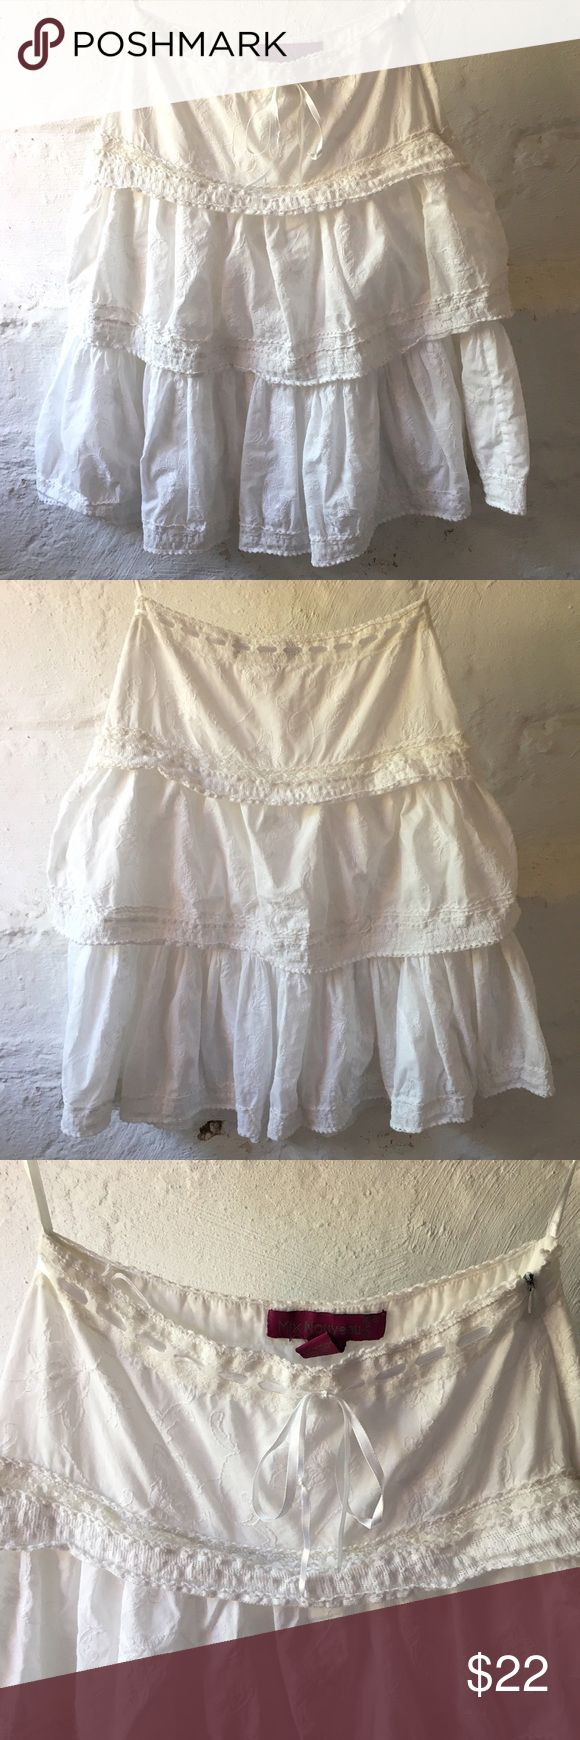 Peasant Boho  Tiered Lace trim skirt 100%  Cotton  Peasant Boho Tiered Ruffle Lace trim Skirt. Sz PS SEE PHOTOS FOR MEASUREMENTS. There is a pull by waistband shown otherwise excellent condition. 🚫no trades pls mix nouveau new york Skirts Midi